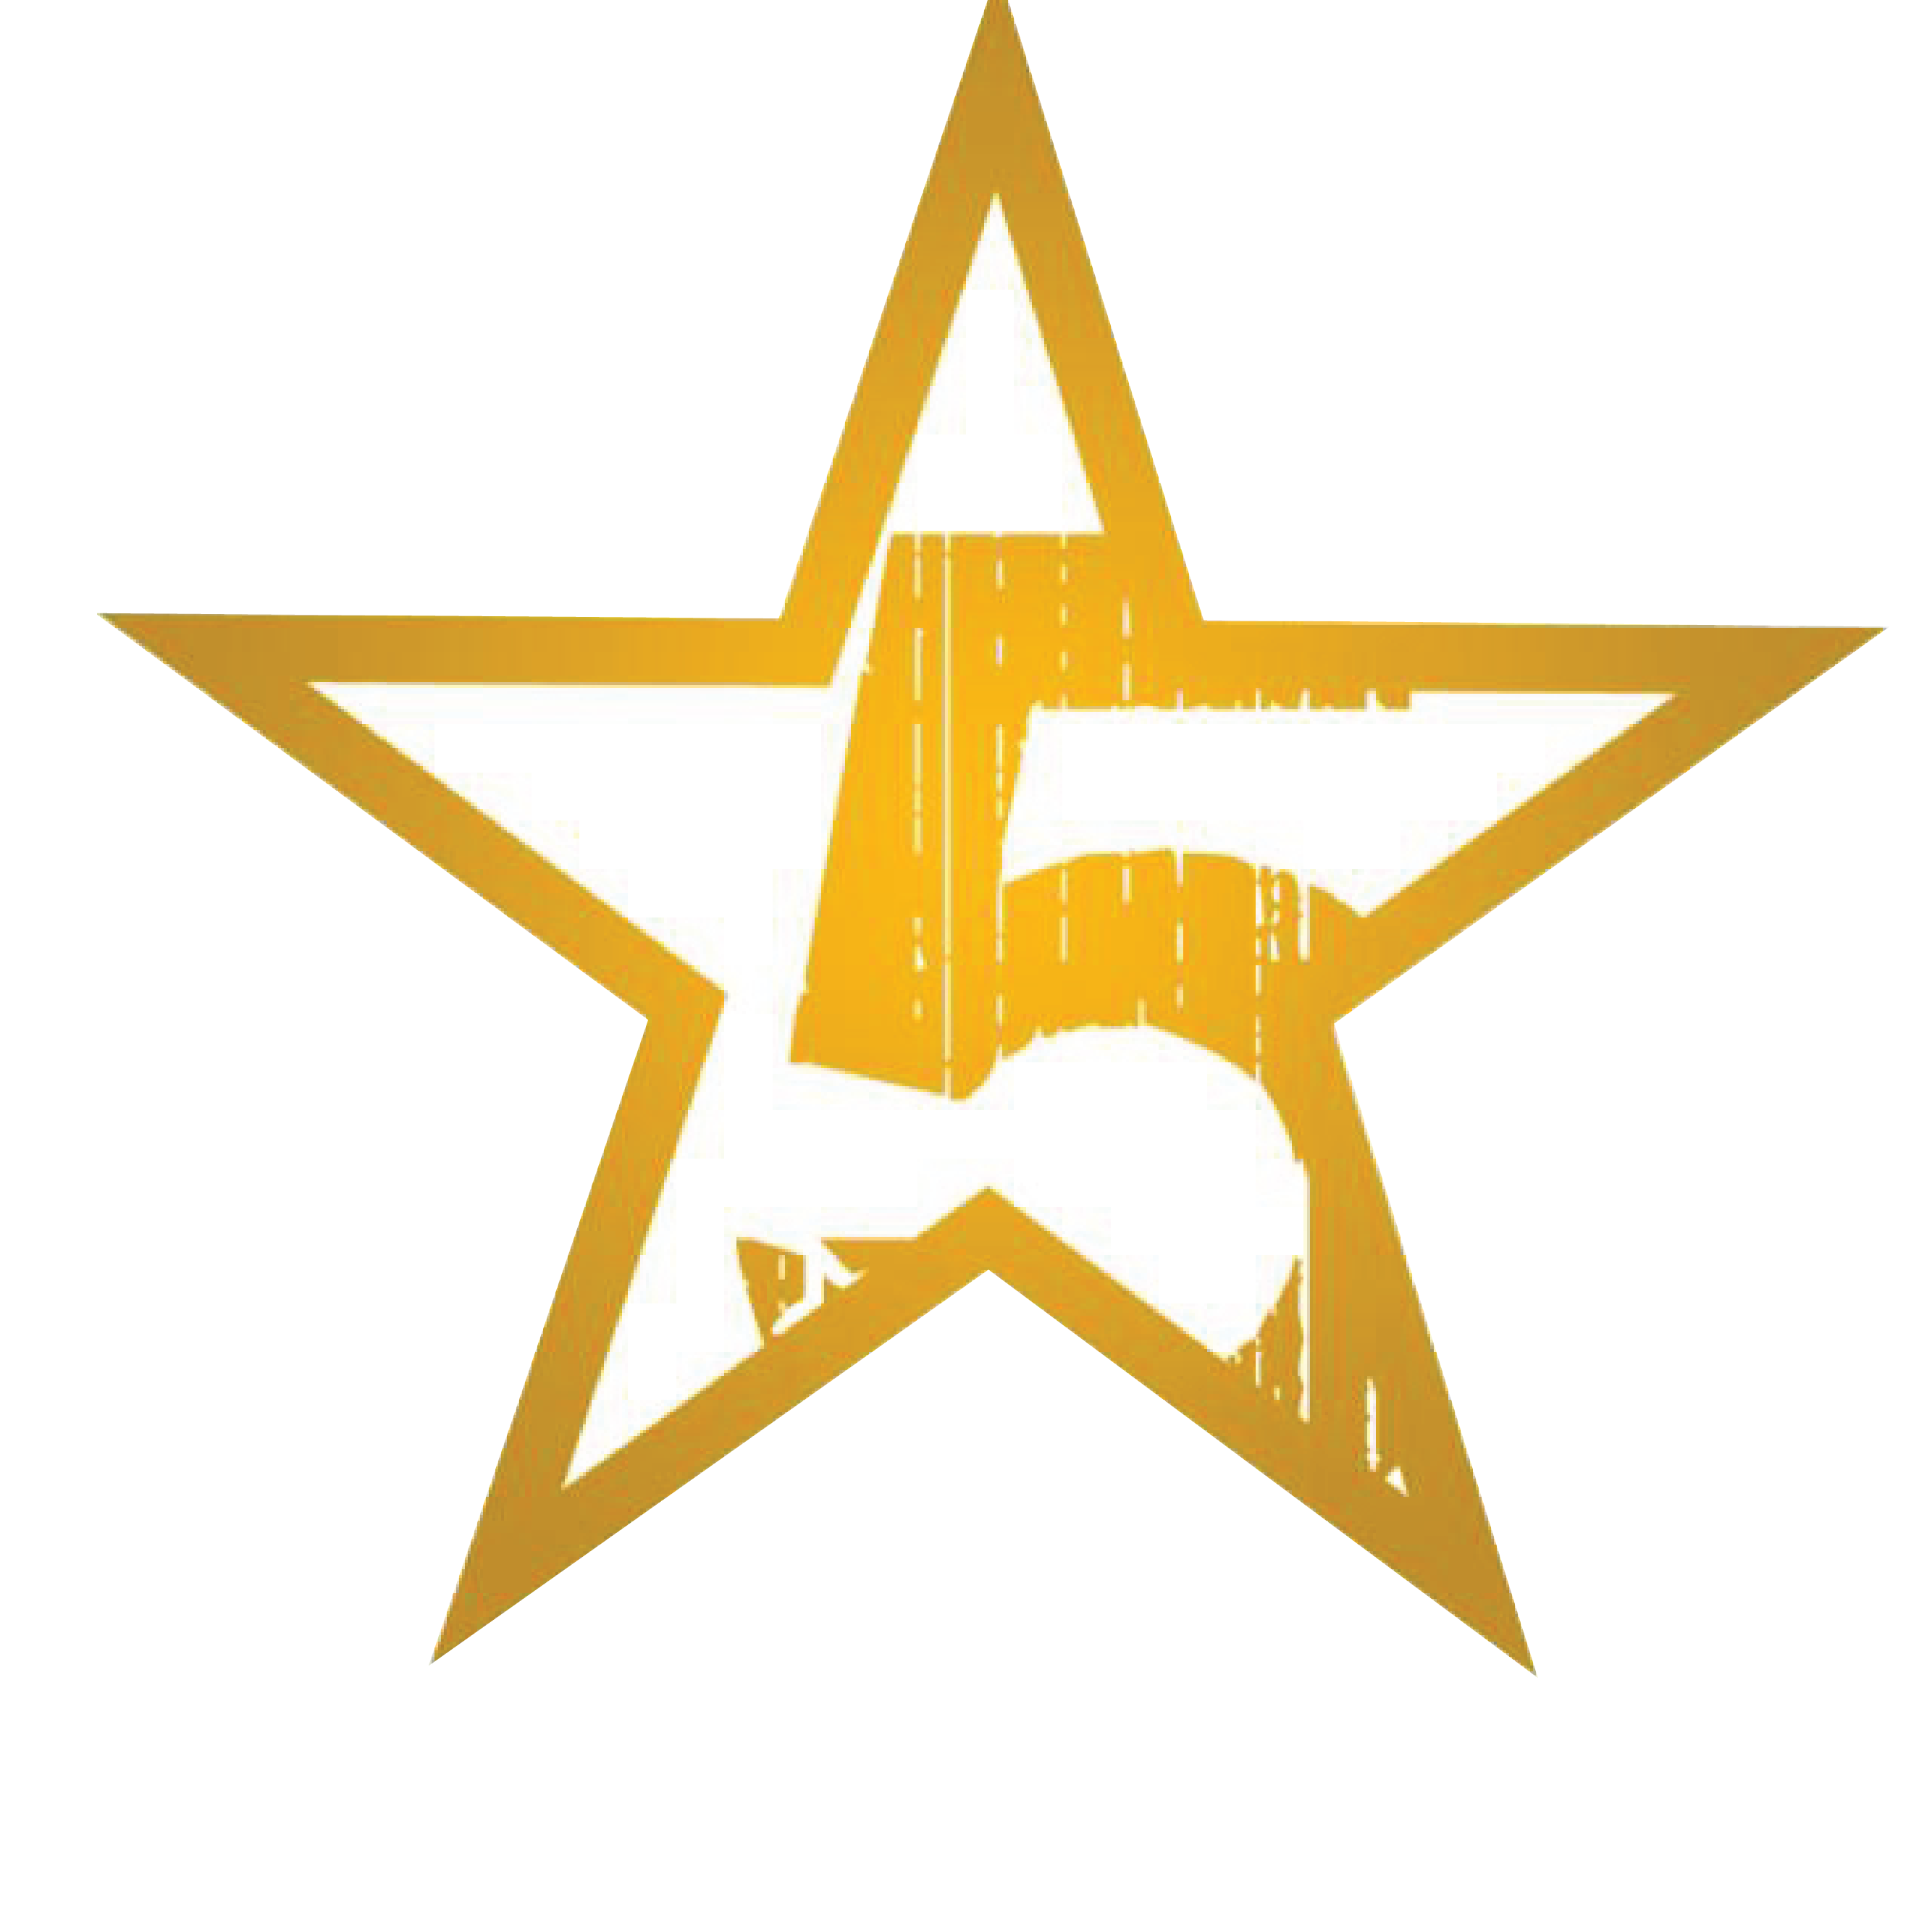 Five Star Services 6900 Philips Hwy Ste 4 Jacksonville Fl Hardwoods Mapquest